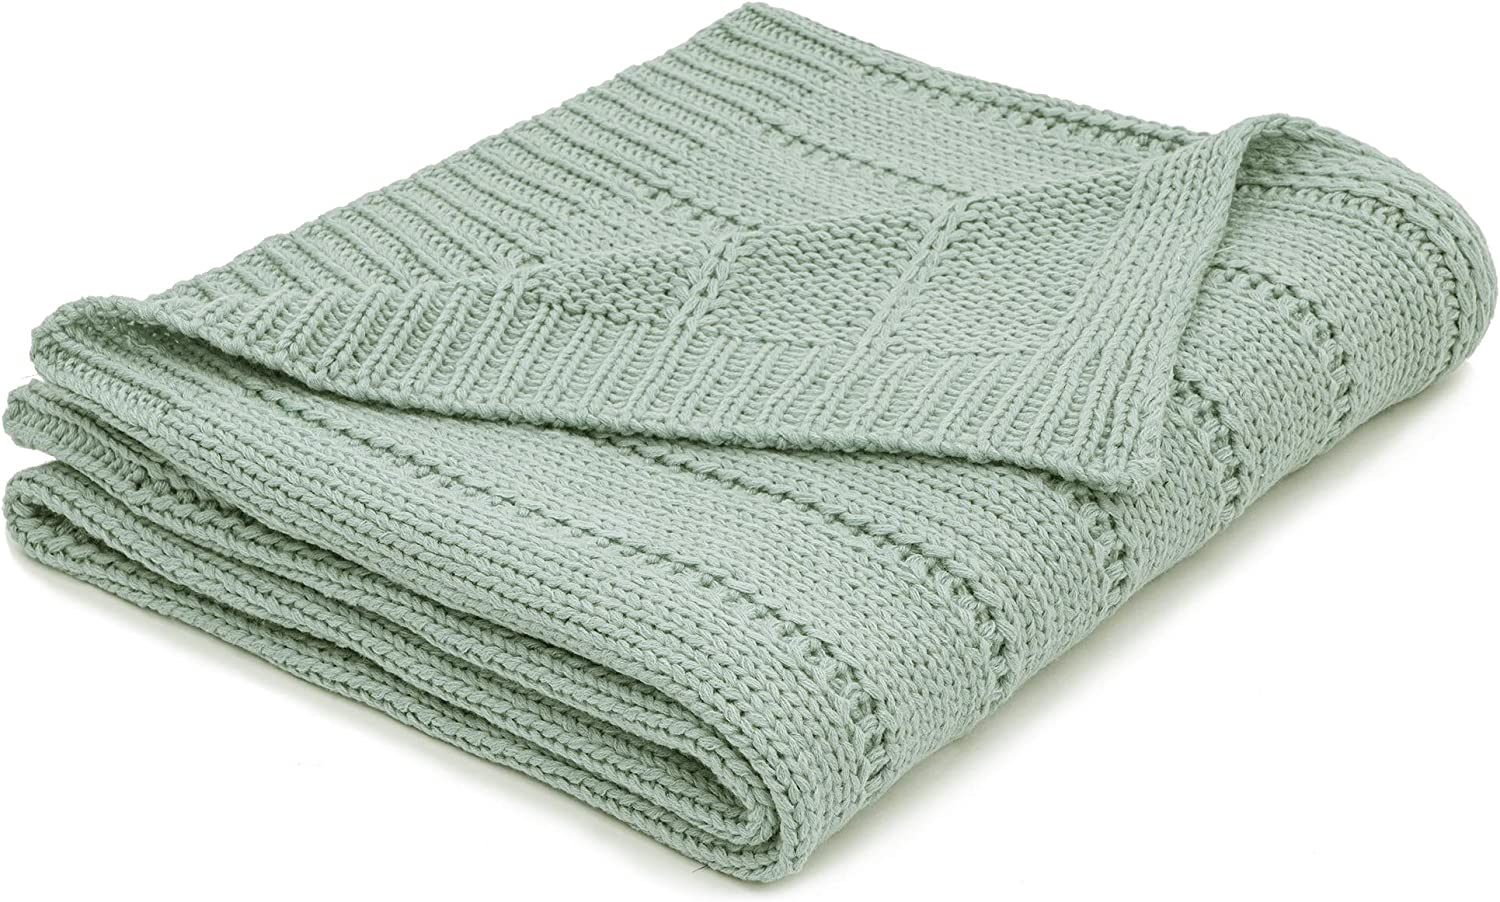 RECYCO Acrylic Solid Color Knitted Throw Blanket Cable Textured Decorative Throw Blanket for Couch Chairs Bedroom Office Home Decor (Sage)